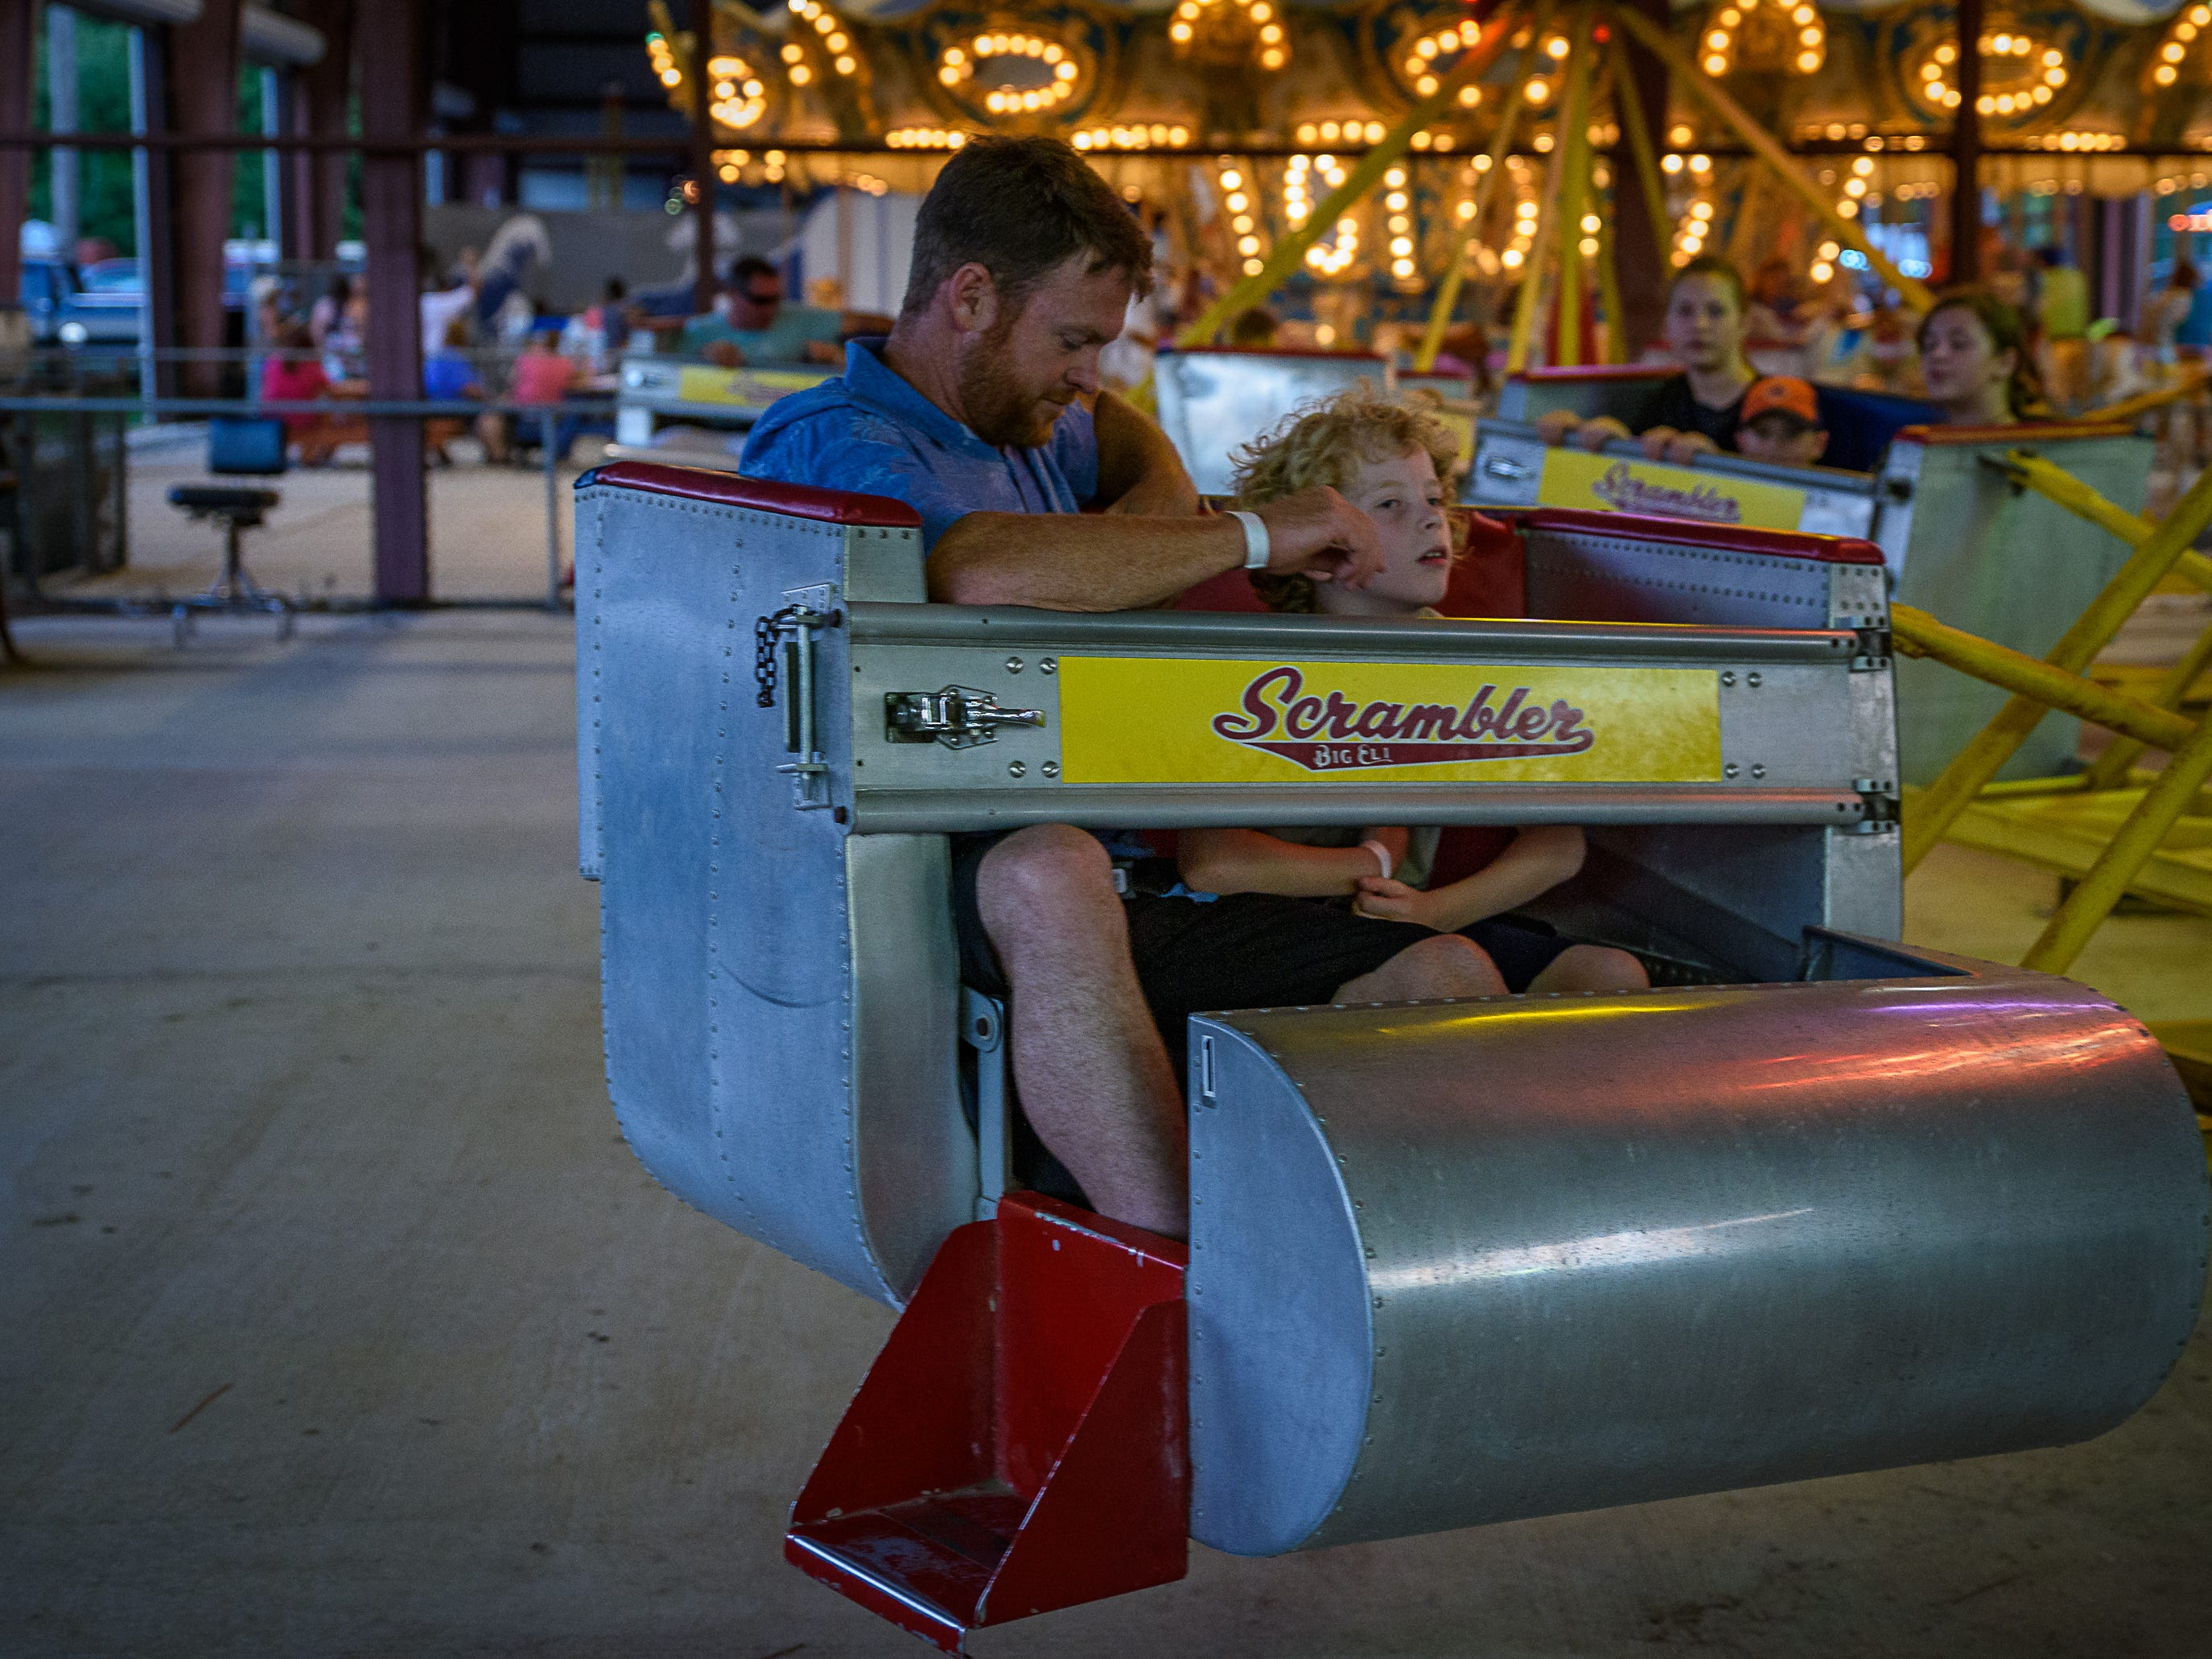 Two fair-goers, being spun on The Scrambler at the Chincoteague Fireman's Carnival.